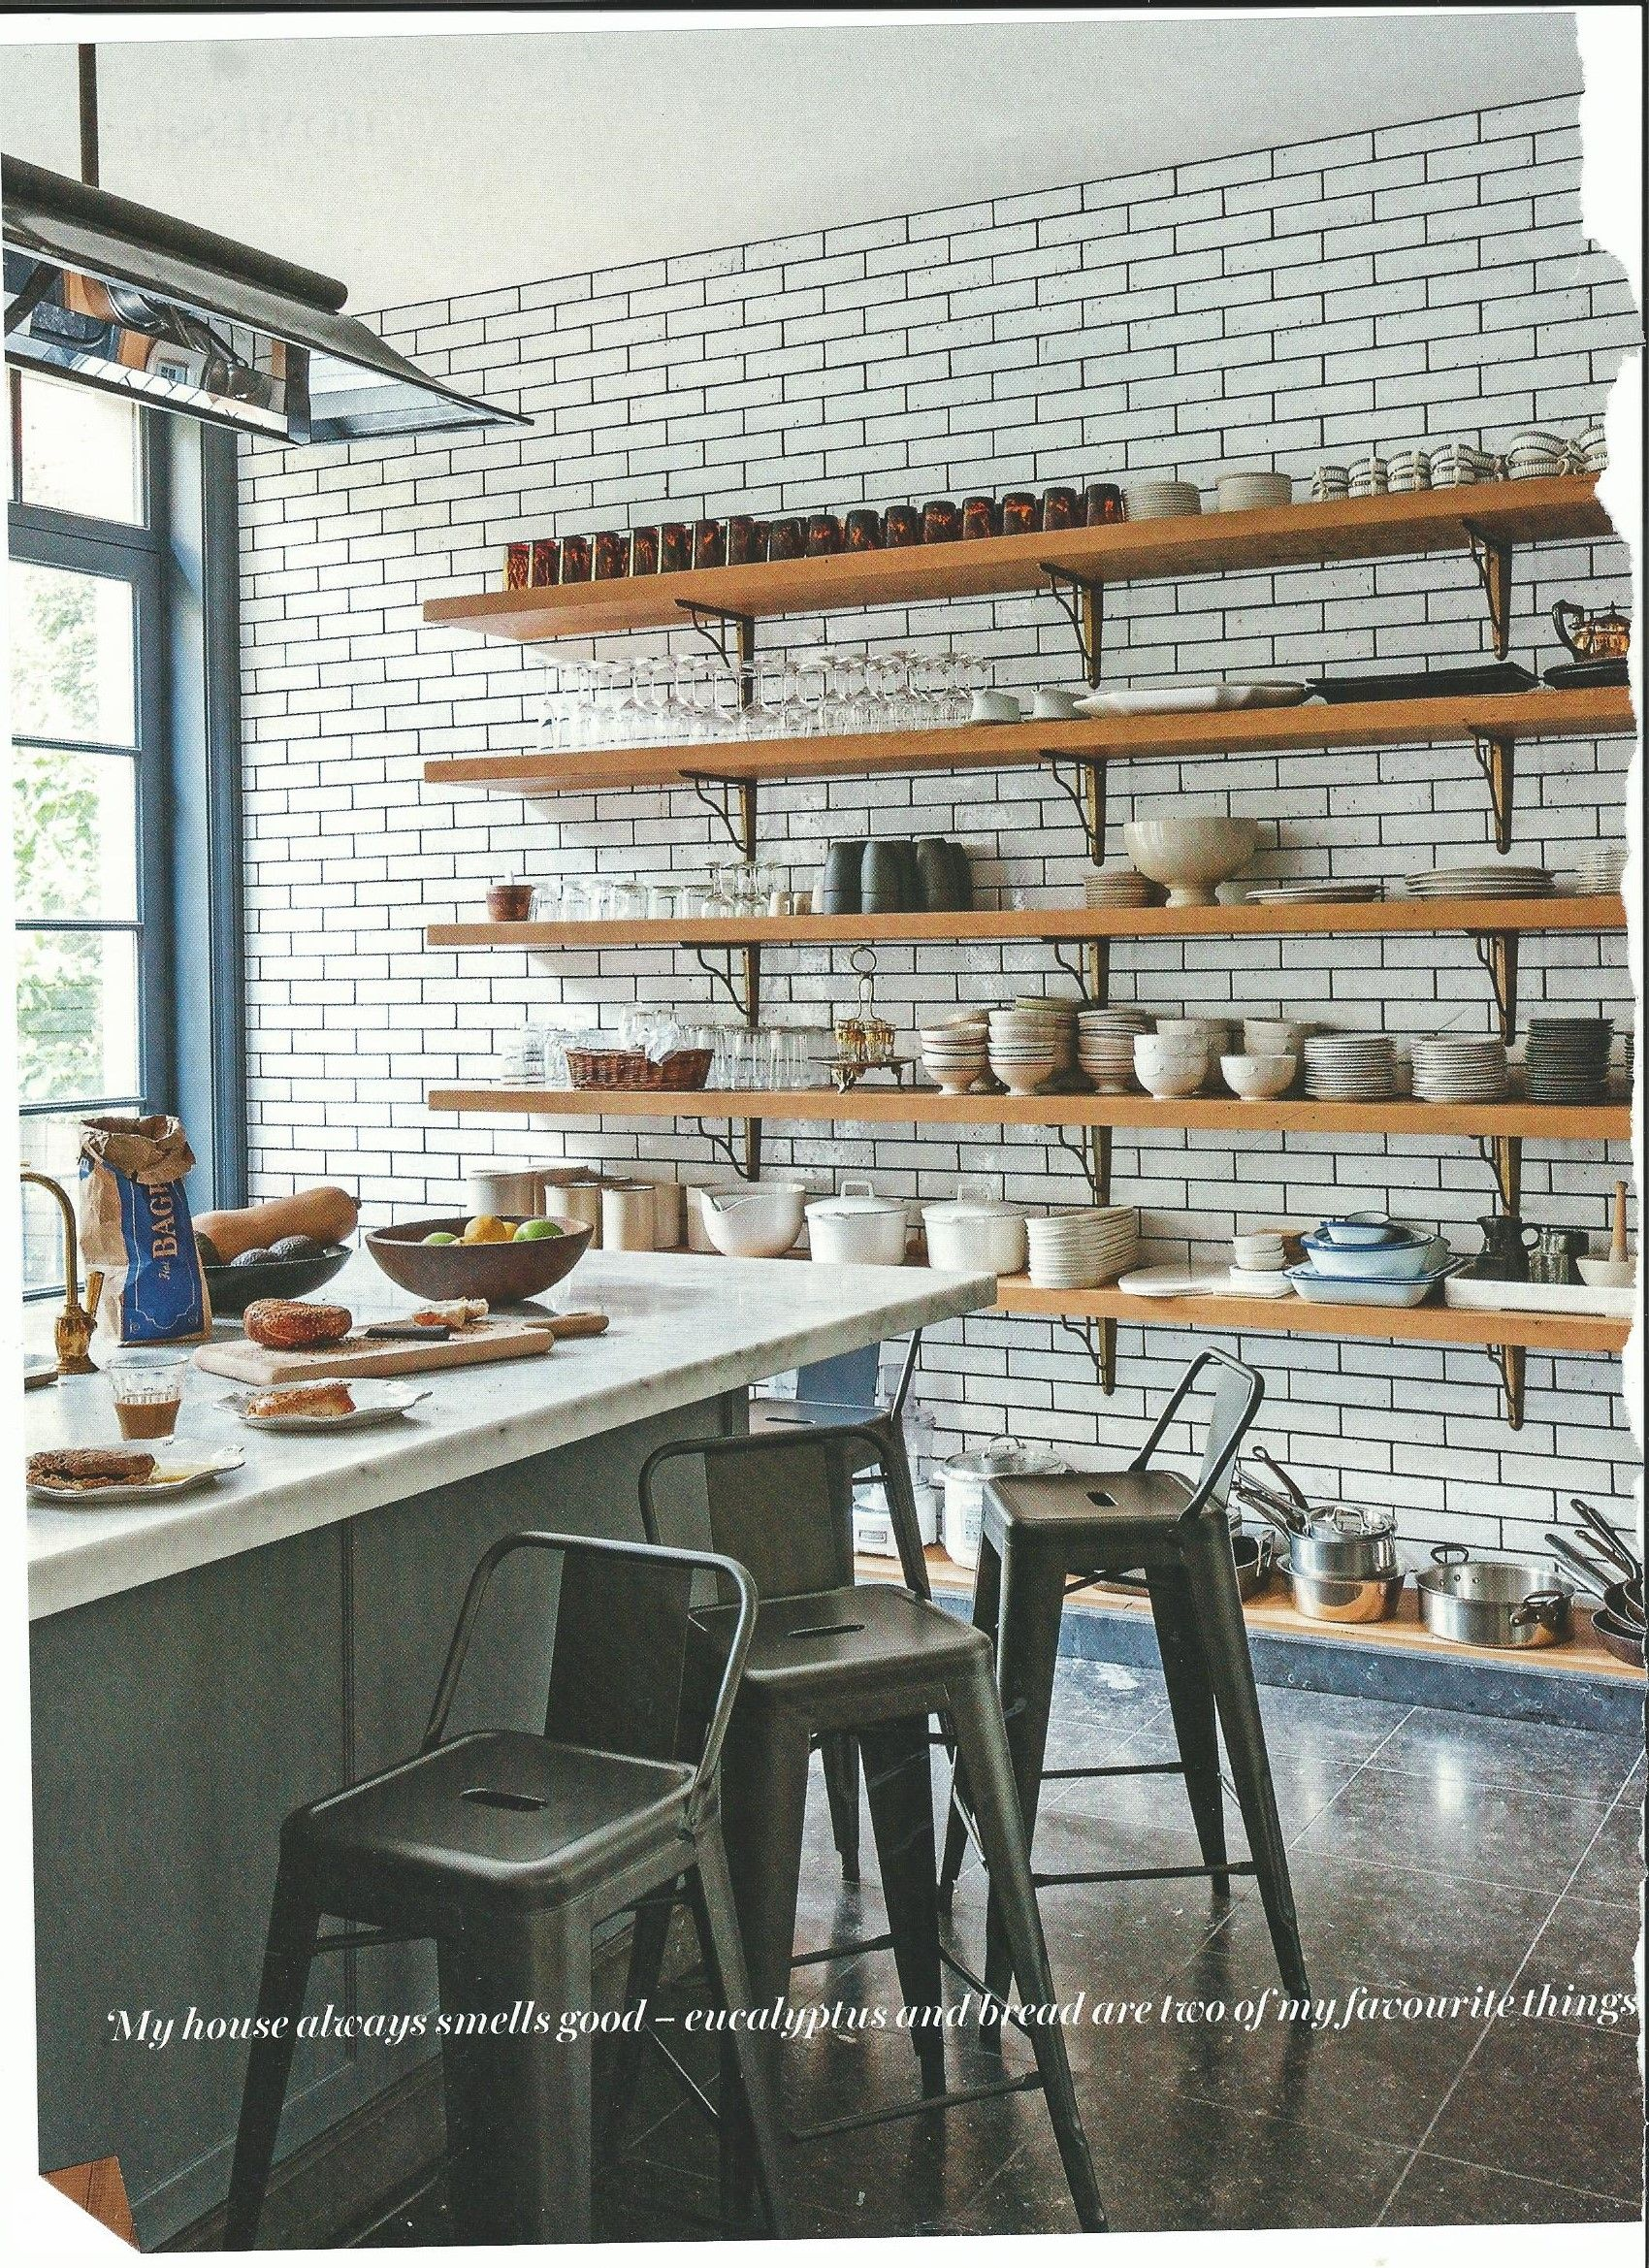 Industrial style butcher shop tiles - full wall | home ideas ...